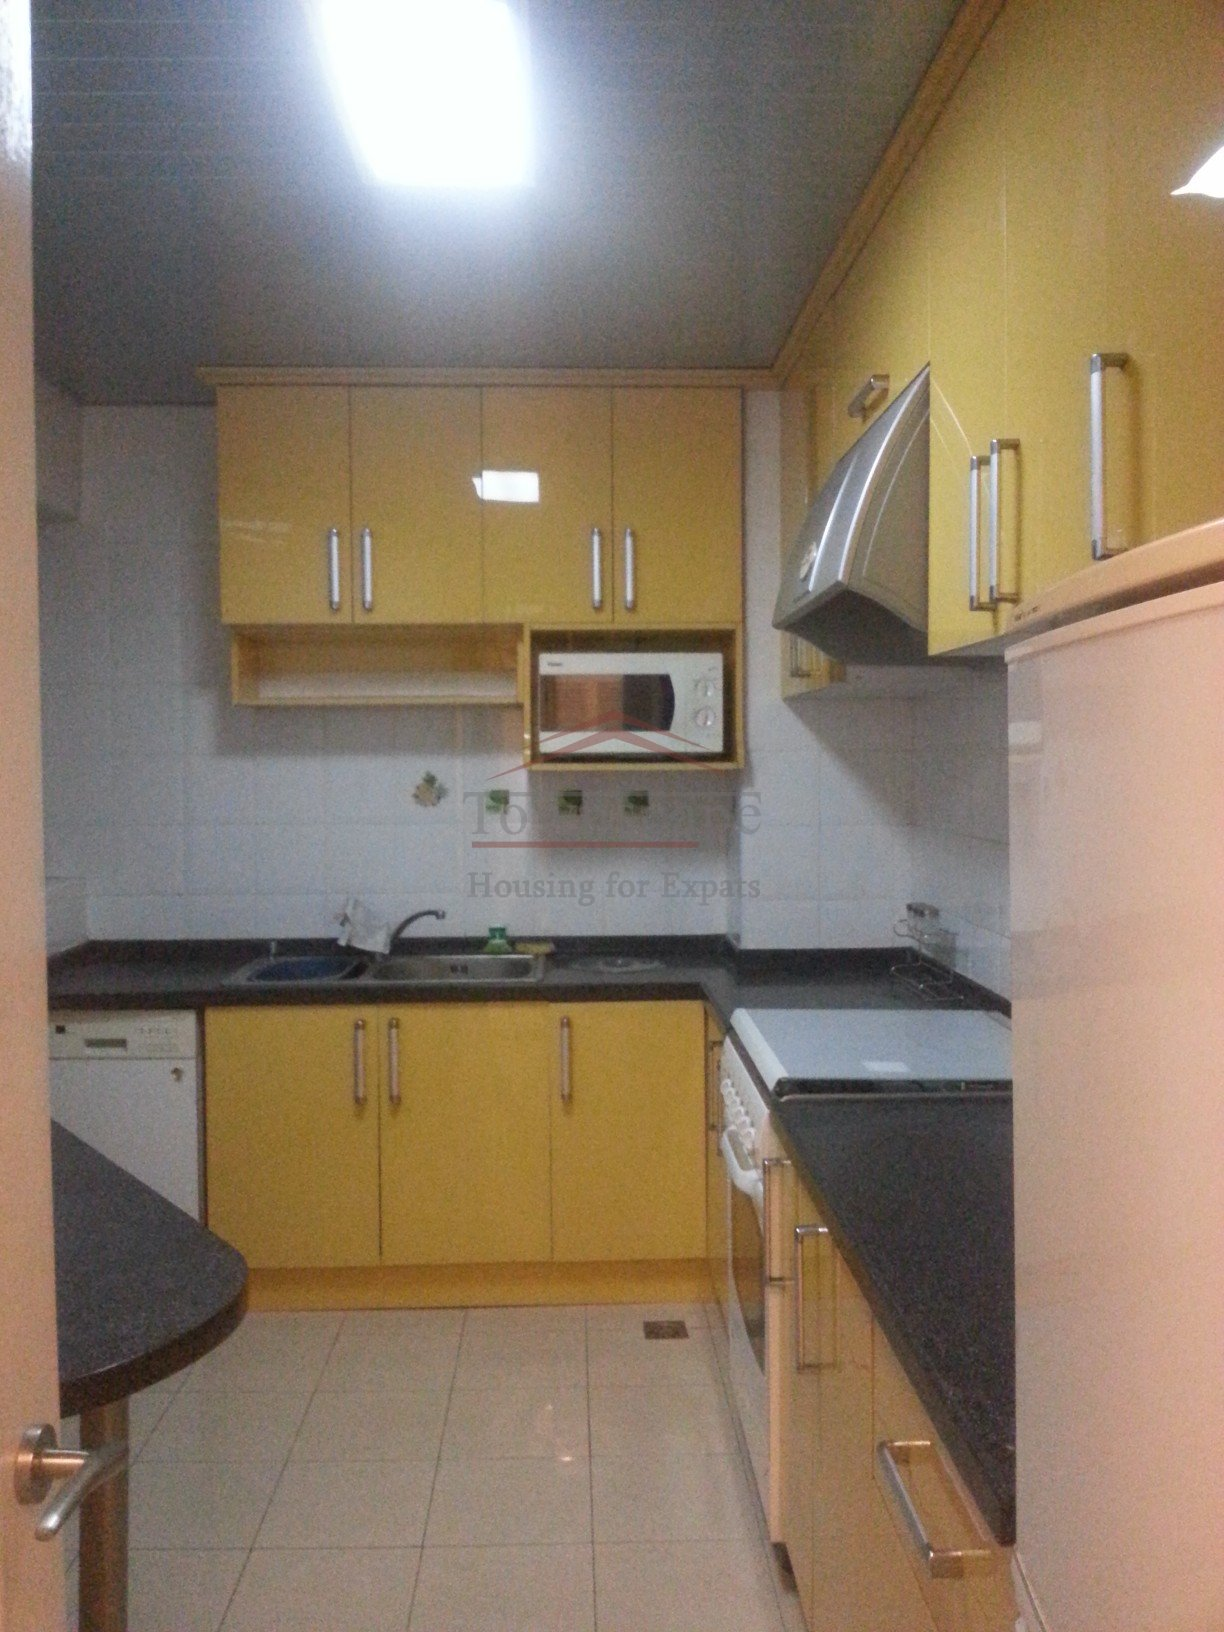 rent apartment Well priced 2-2-1 near xujiahui station line 1/11/9